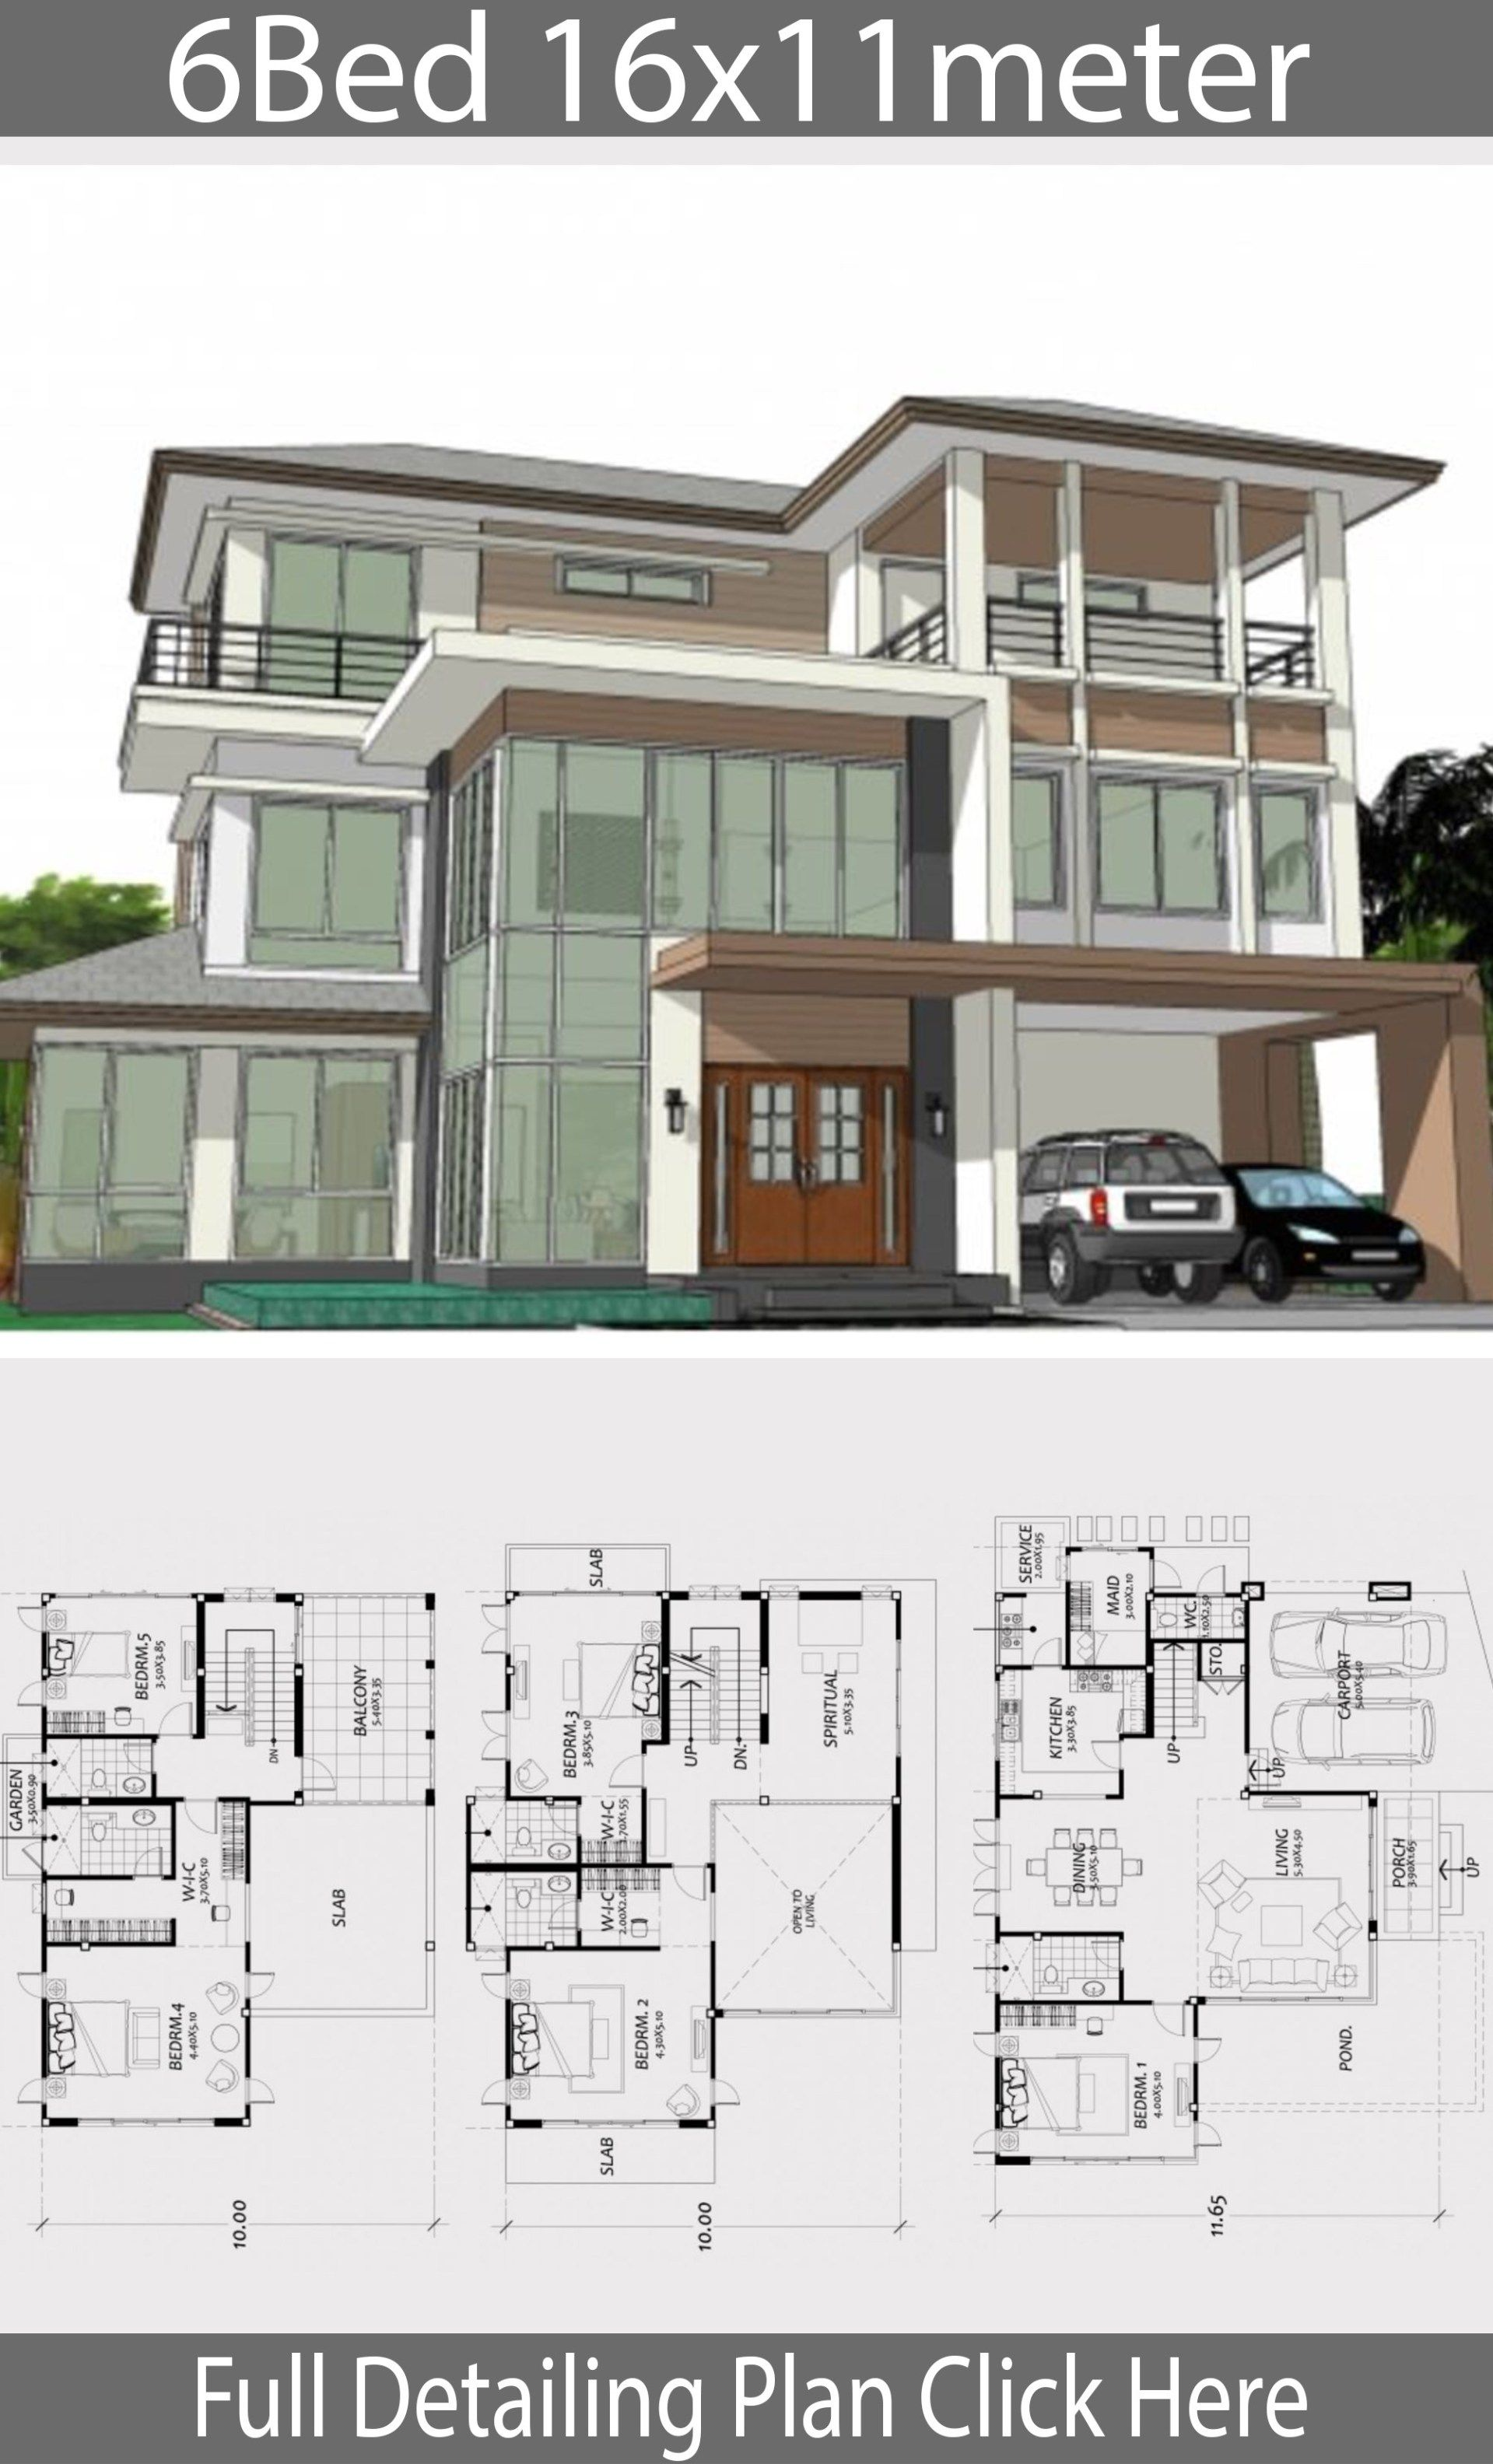 Home Design Plan 16x11m With 6 Bedrooms Home Ideas Beautiful House Plans House Layout Plans House Architecture Design